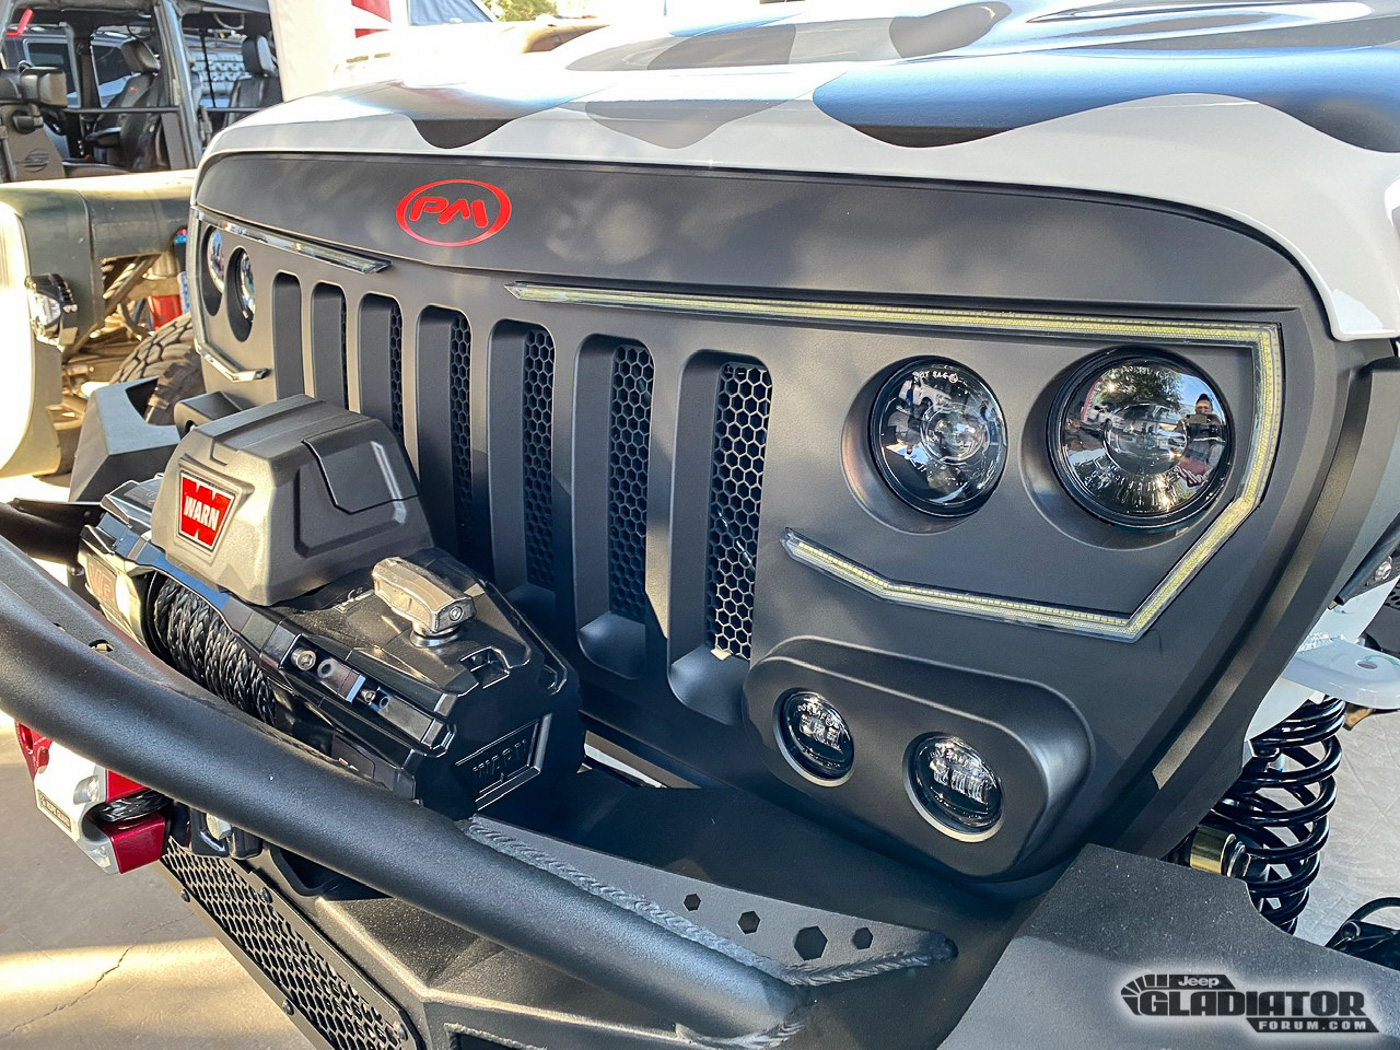 Pro-Motorsports-Supercharged-JT-Jeep-Gladiator-SEMA-Build--5.jpg